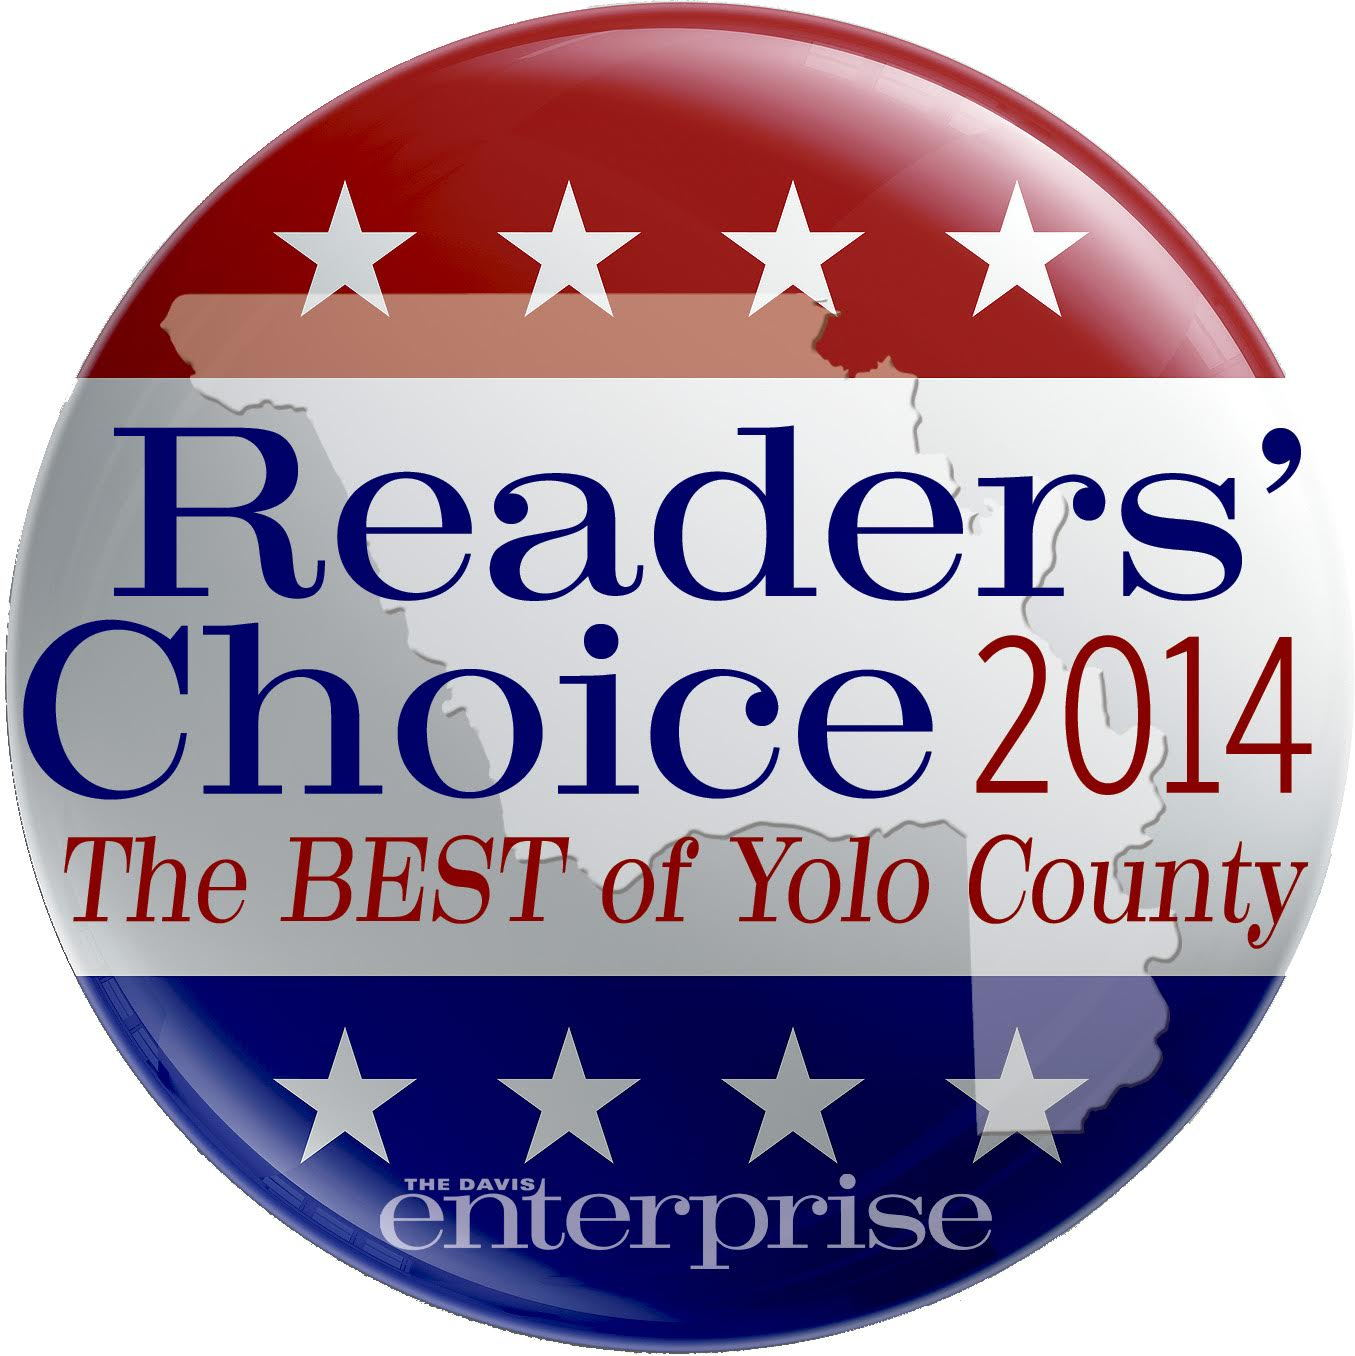 The Best of Yolo County 2014